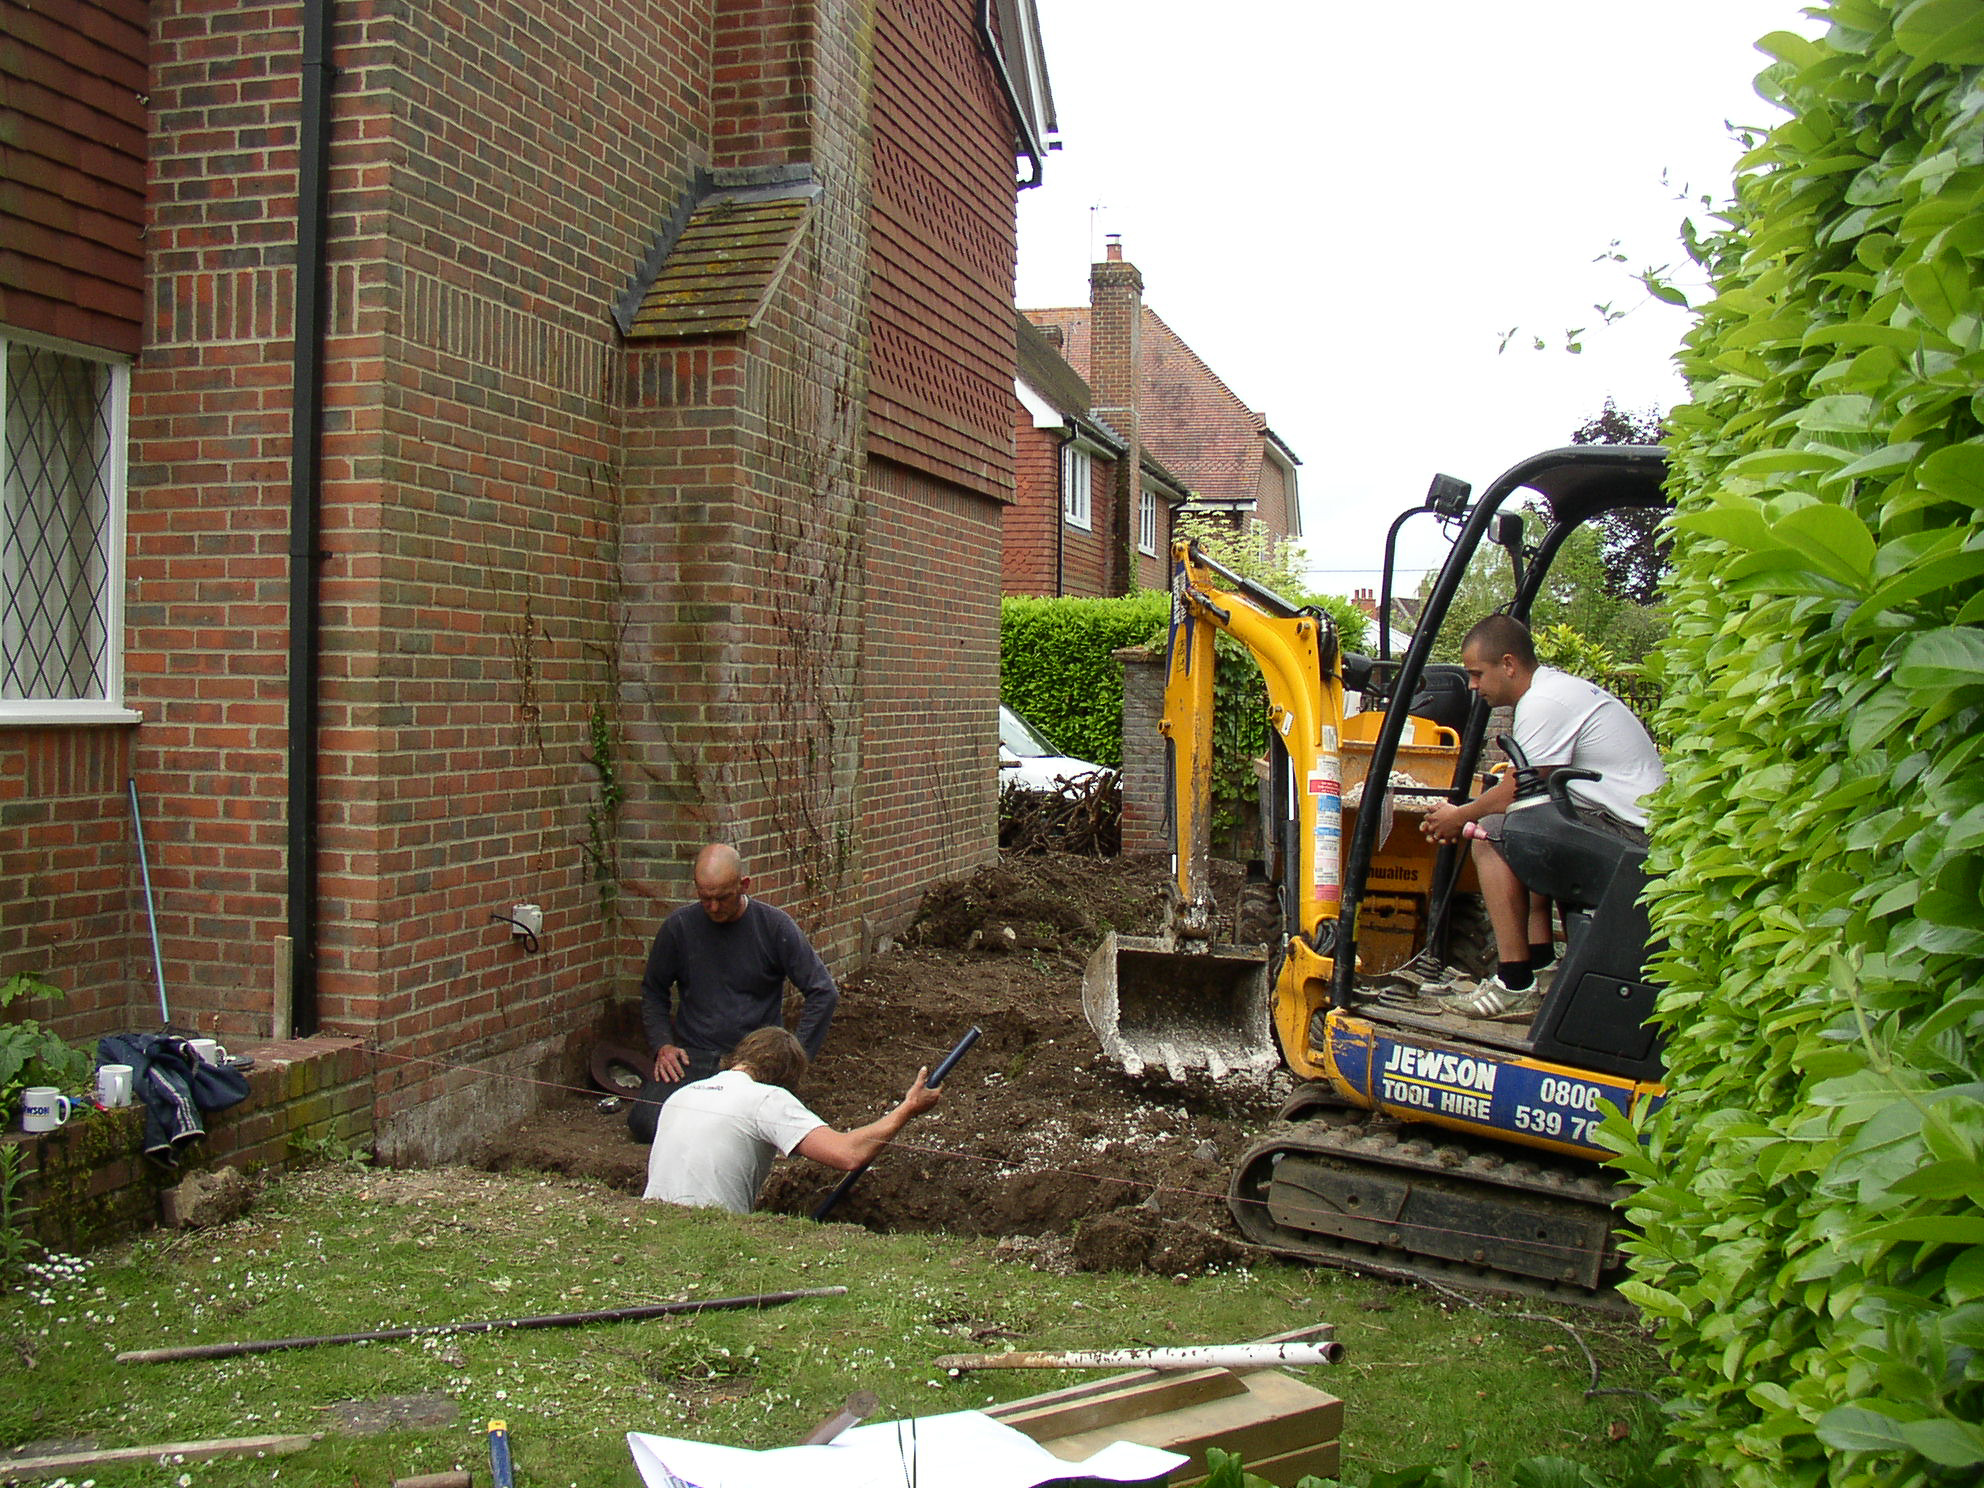 Digging foundations in the garden